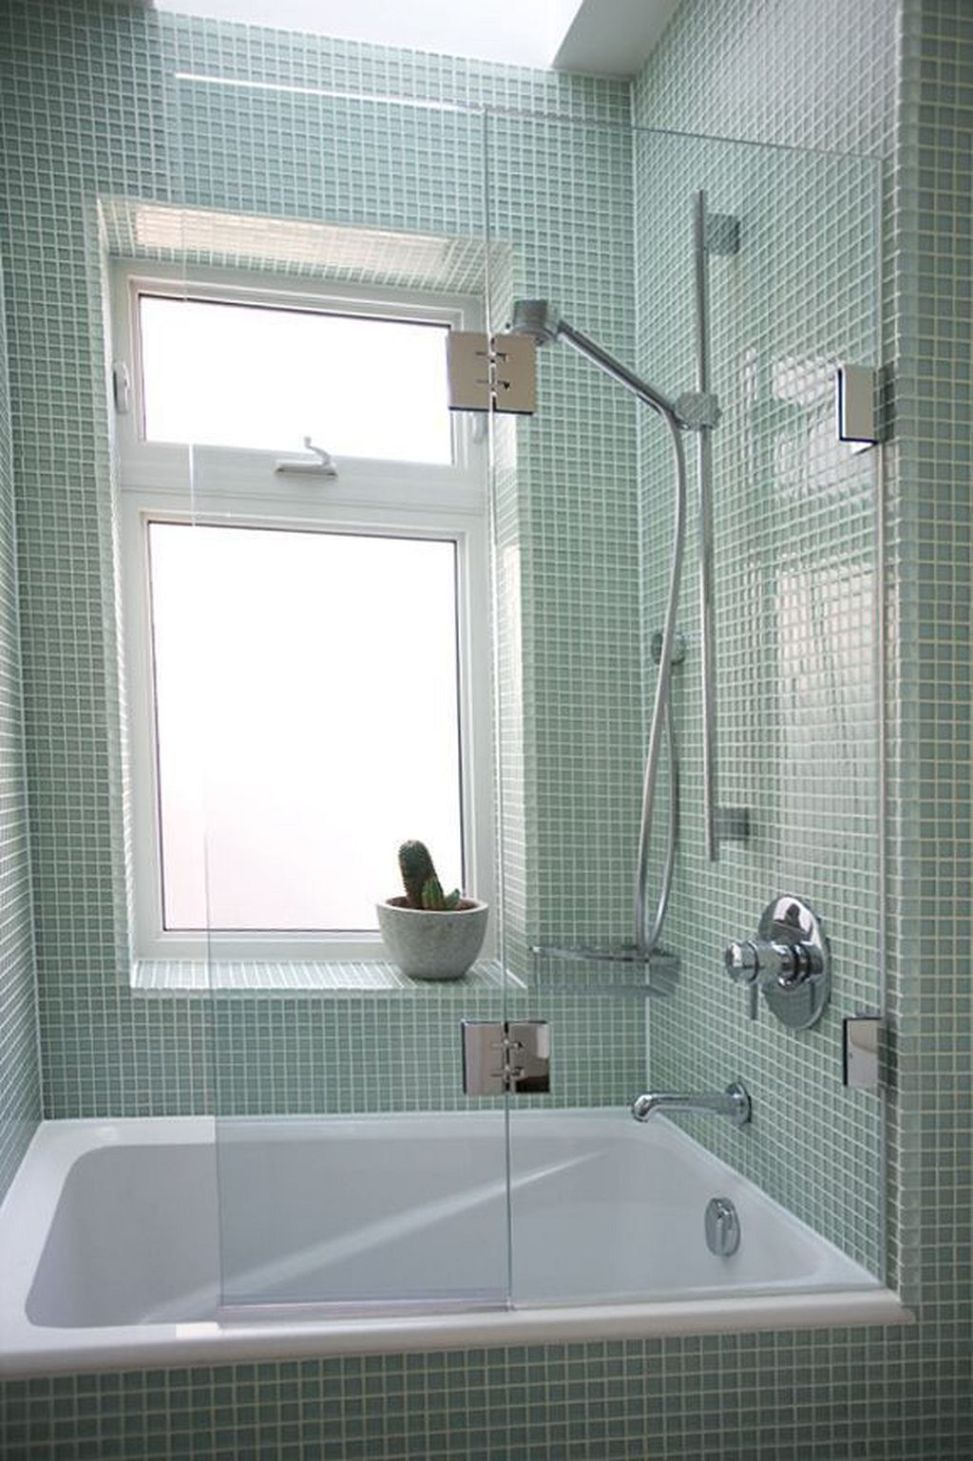 This bath shower combo lowes lowes shower stall lowes